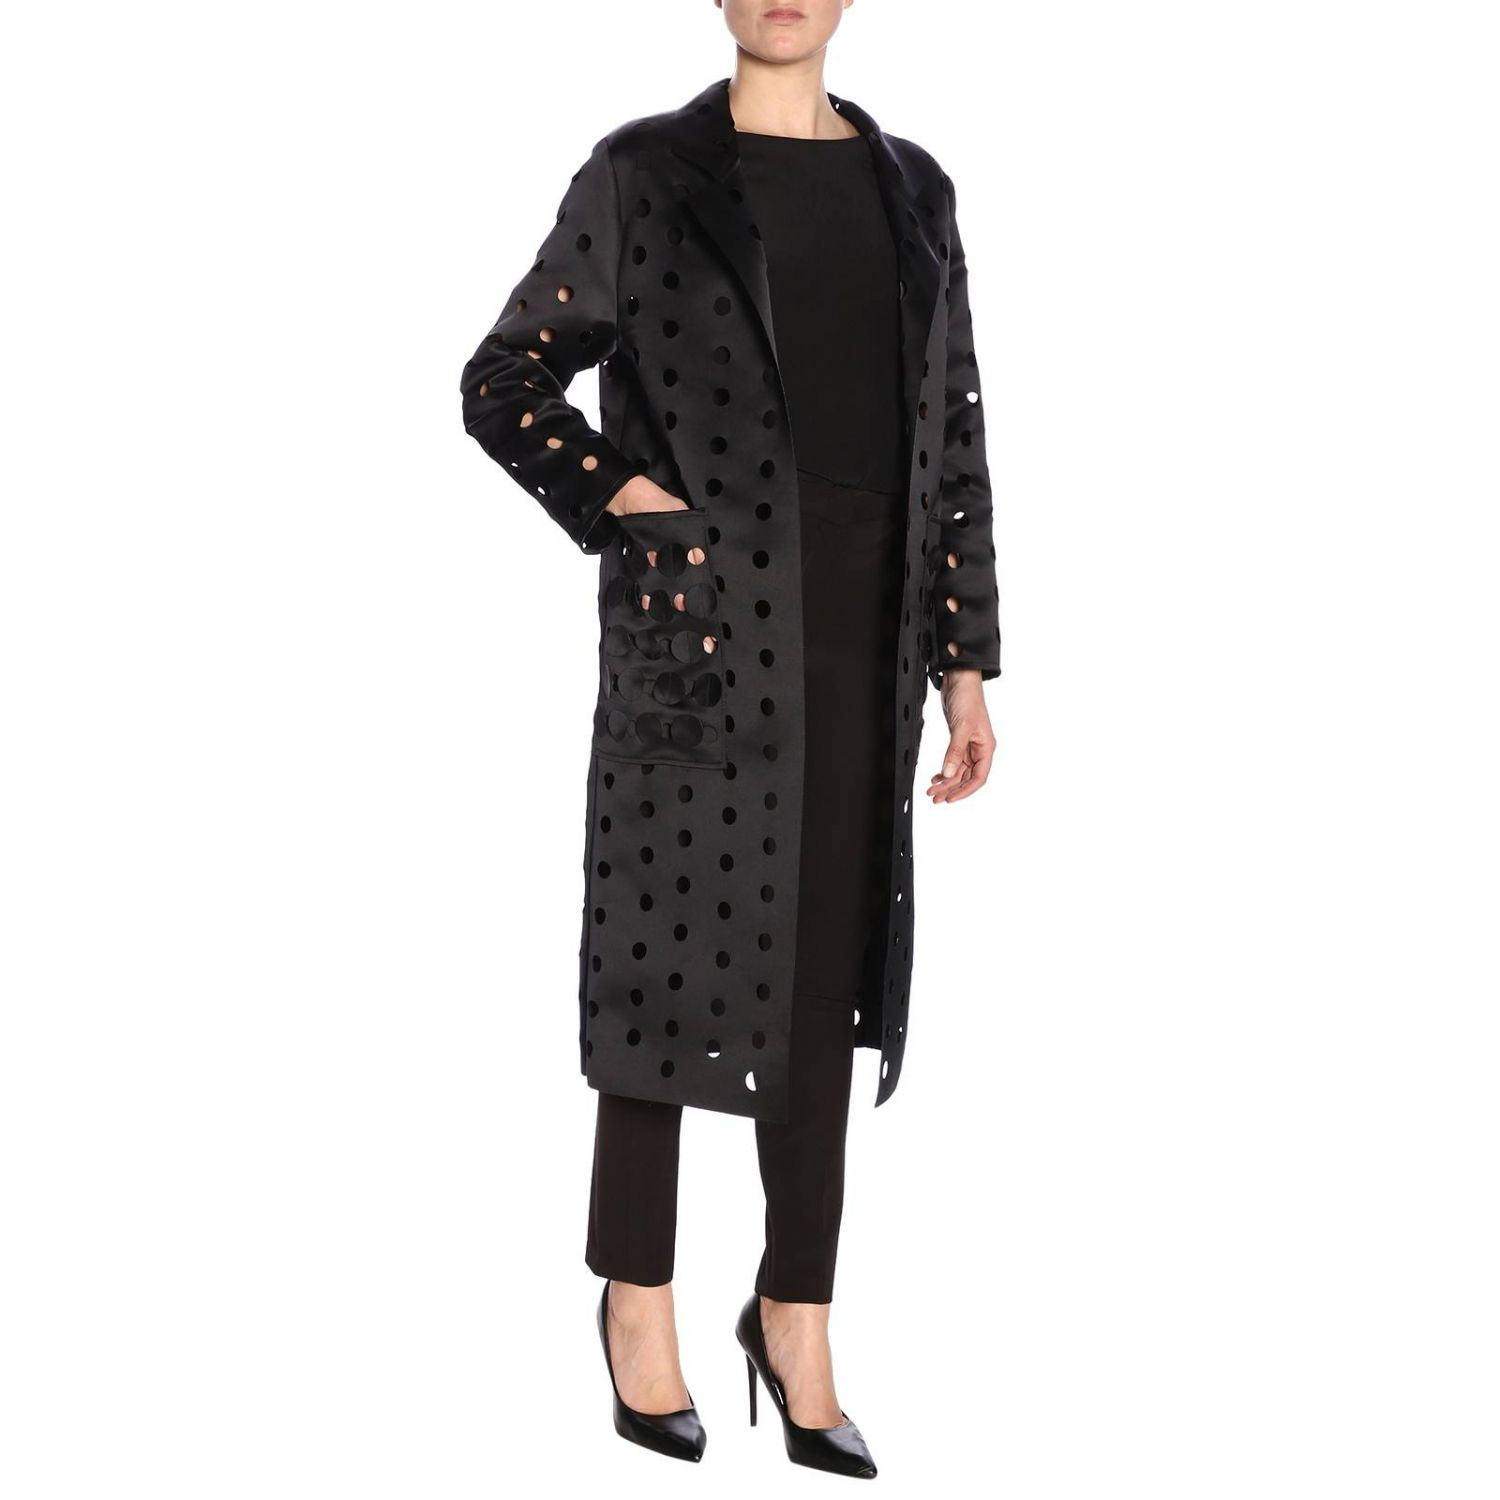 Cappotto donna Caban Romantic nero 4